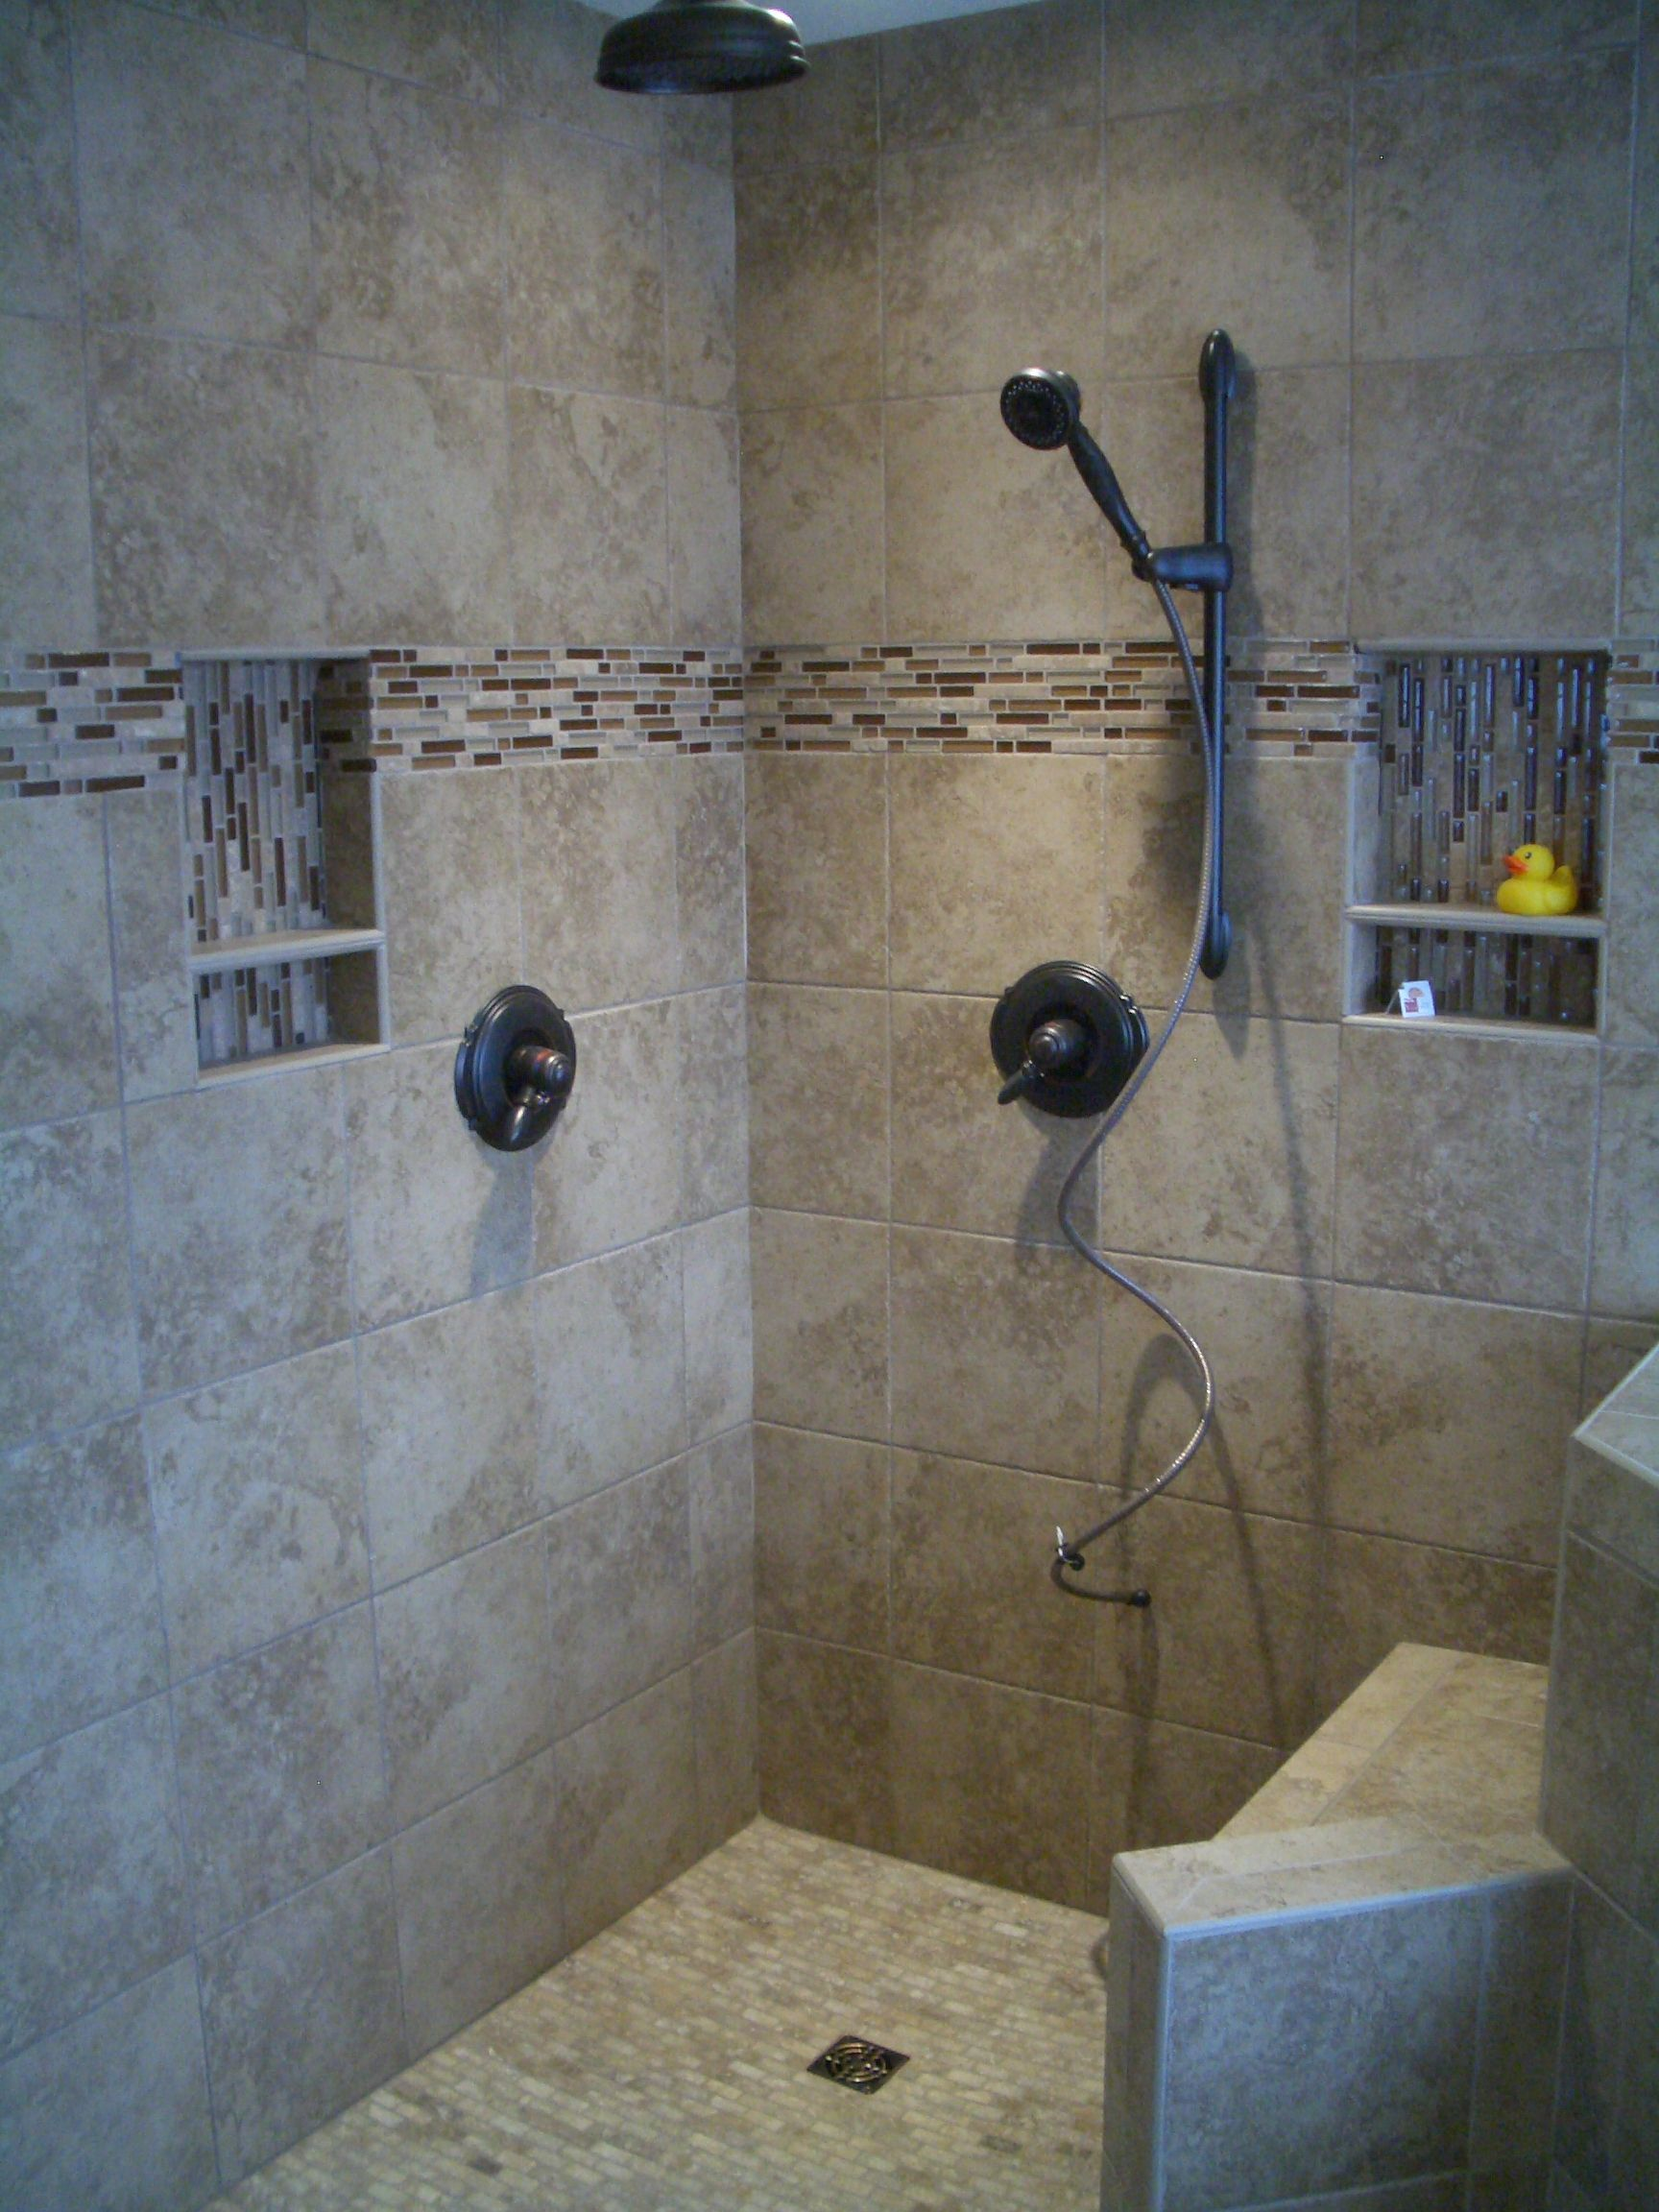 Stand Up Shower Ideas stand up shower designs ideas : classical look stand up shower